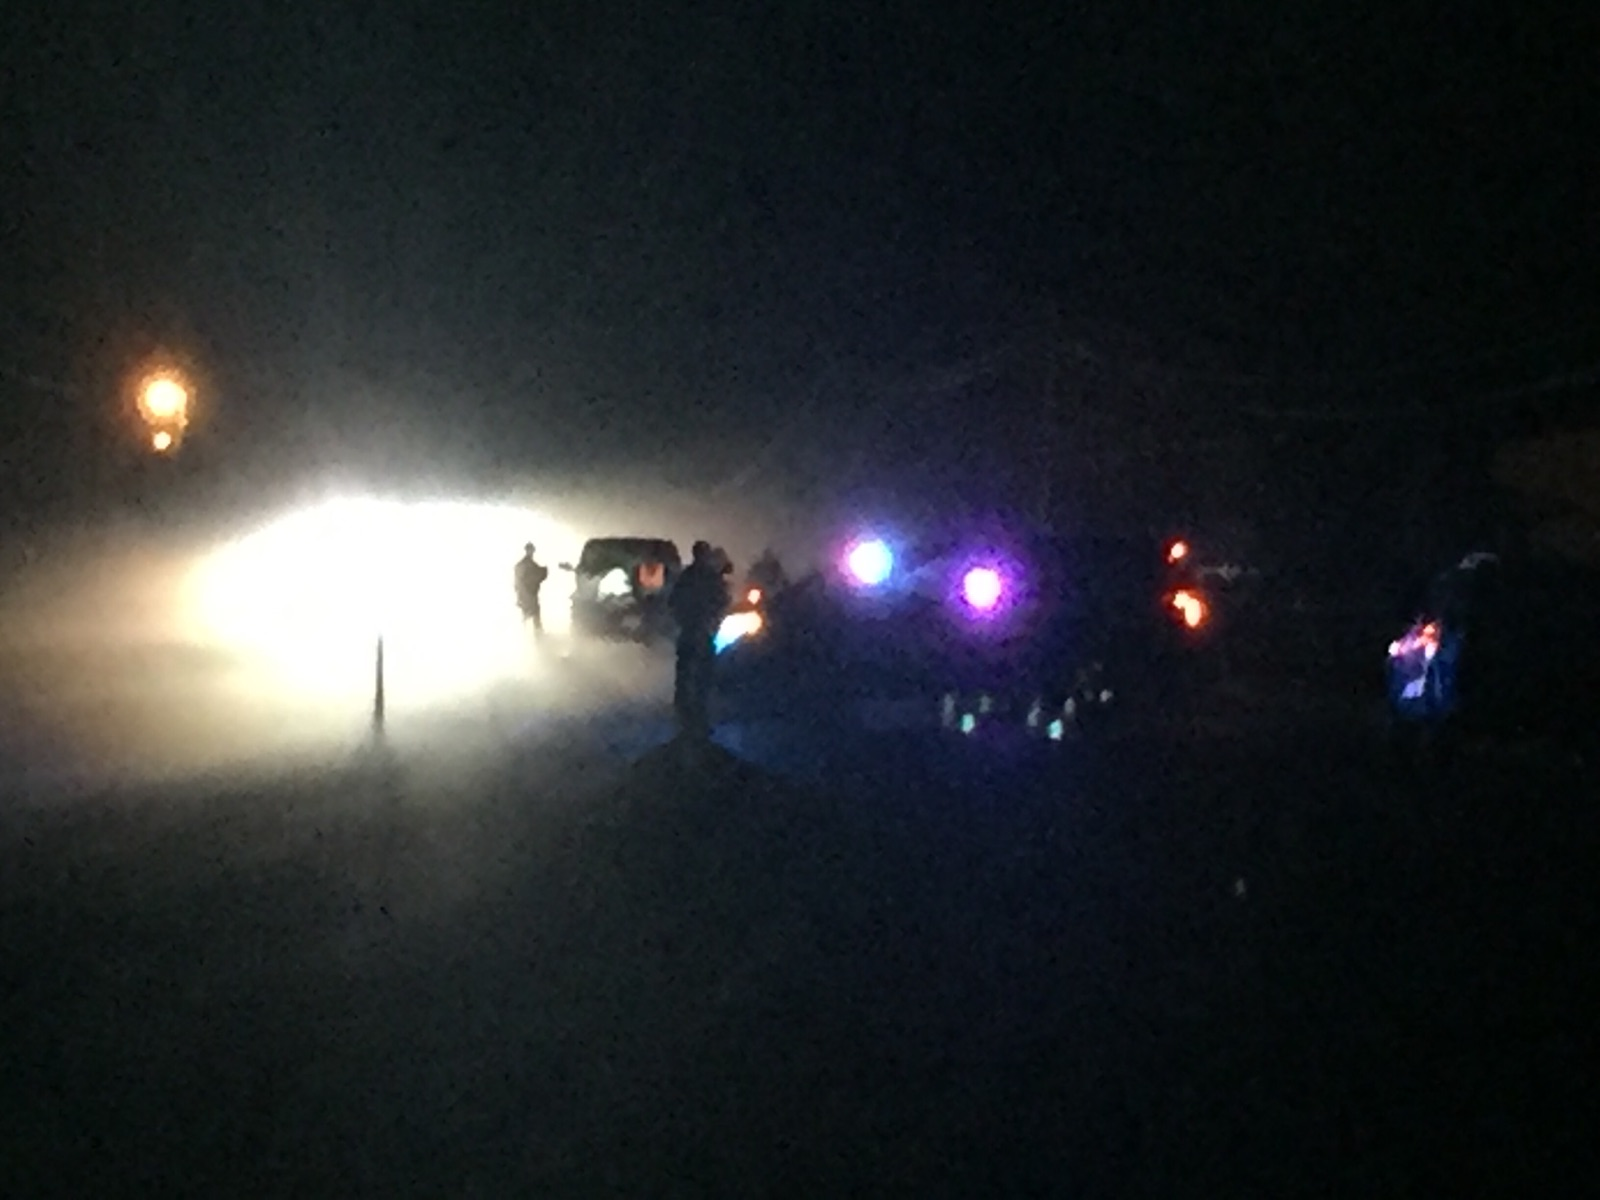 Oregon State Police say a teenage boy is dead after being hit by a car on Highway 99 south of Creswell, Dec. 6, 2017. (SBG)